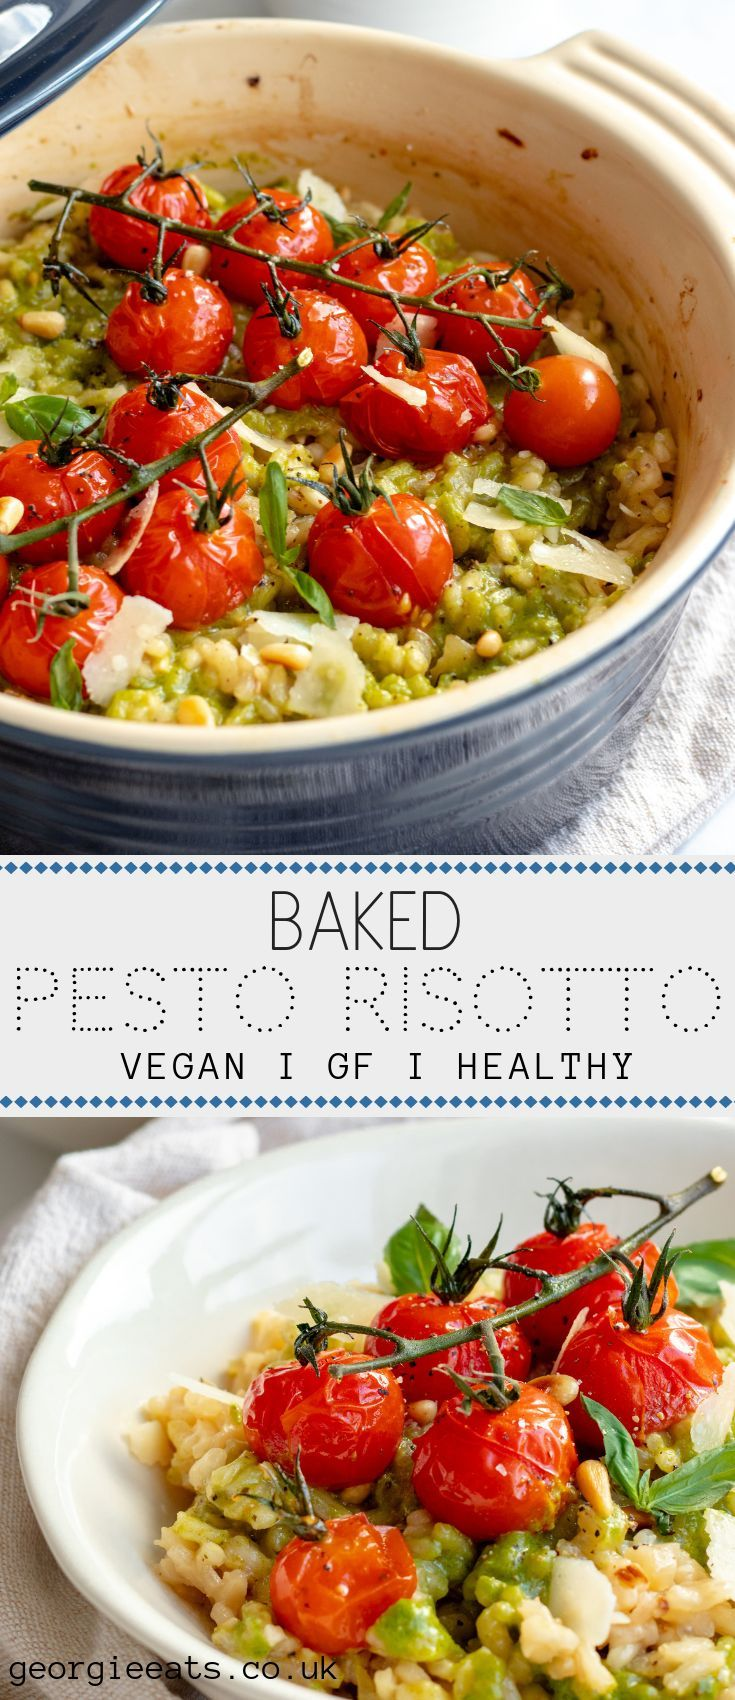 Baked pesto risotto with roasted tomatoes